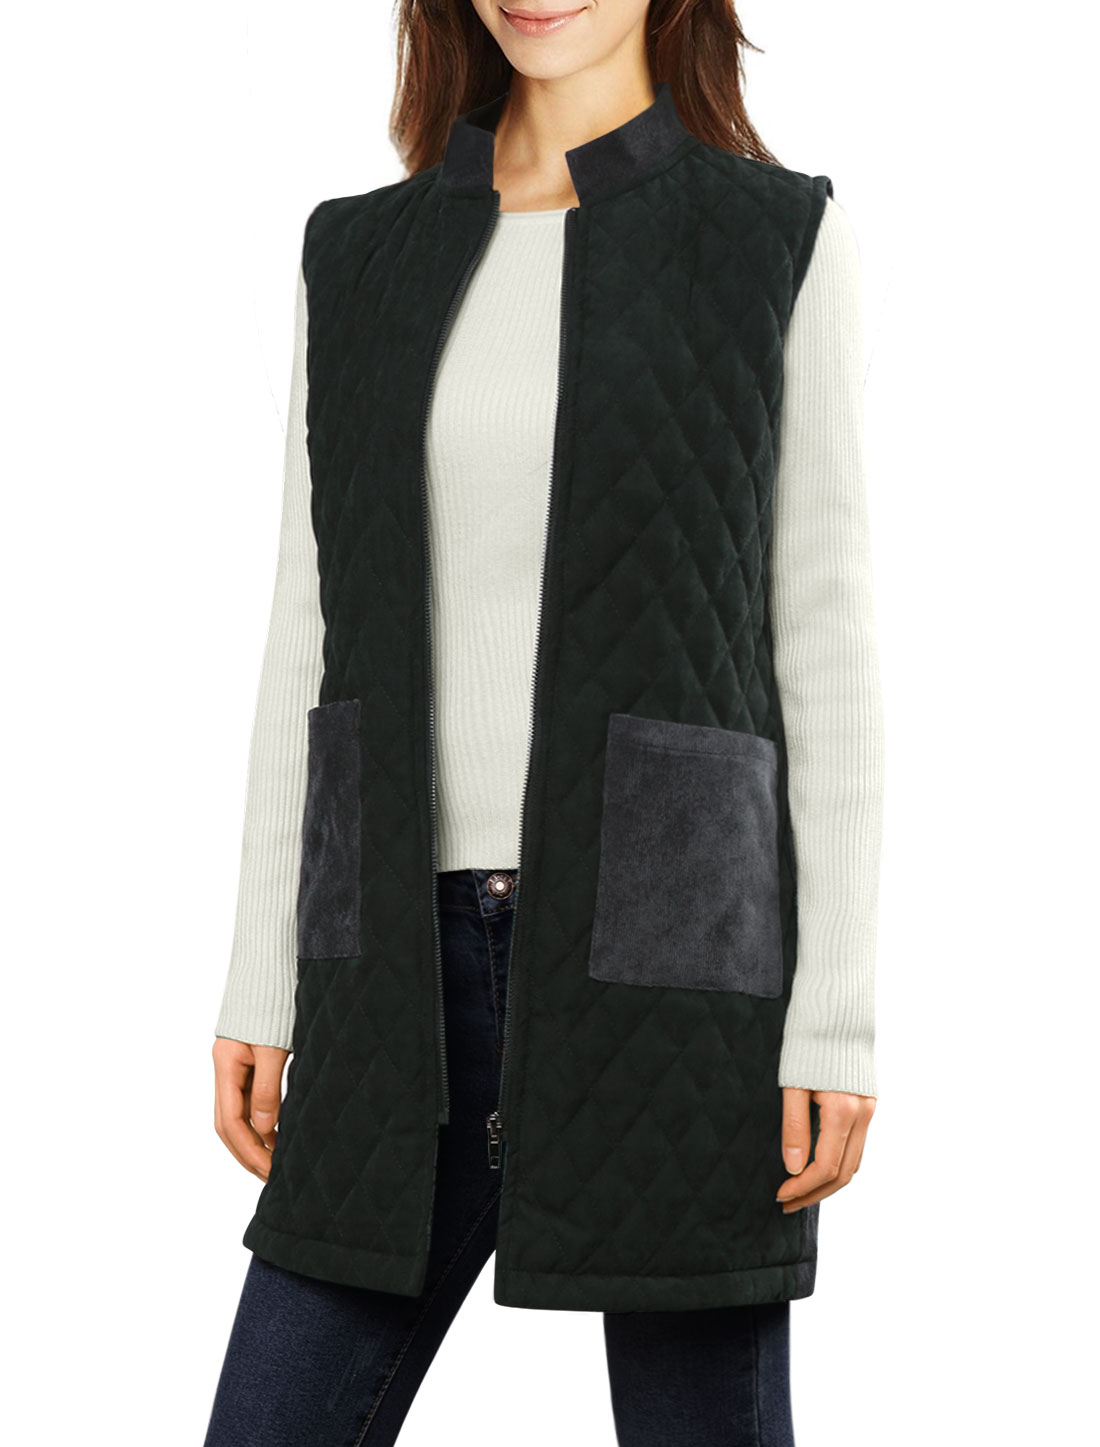 Woman Stand Collar Zip Up Corduroy Quilted Tunic Vest Charcoal Gray XL